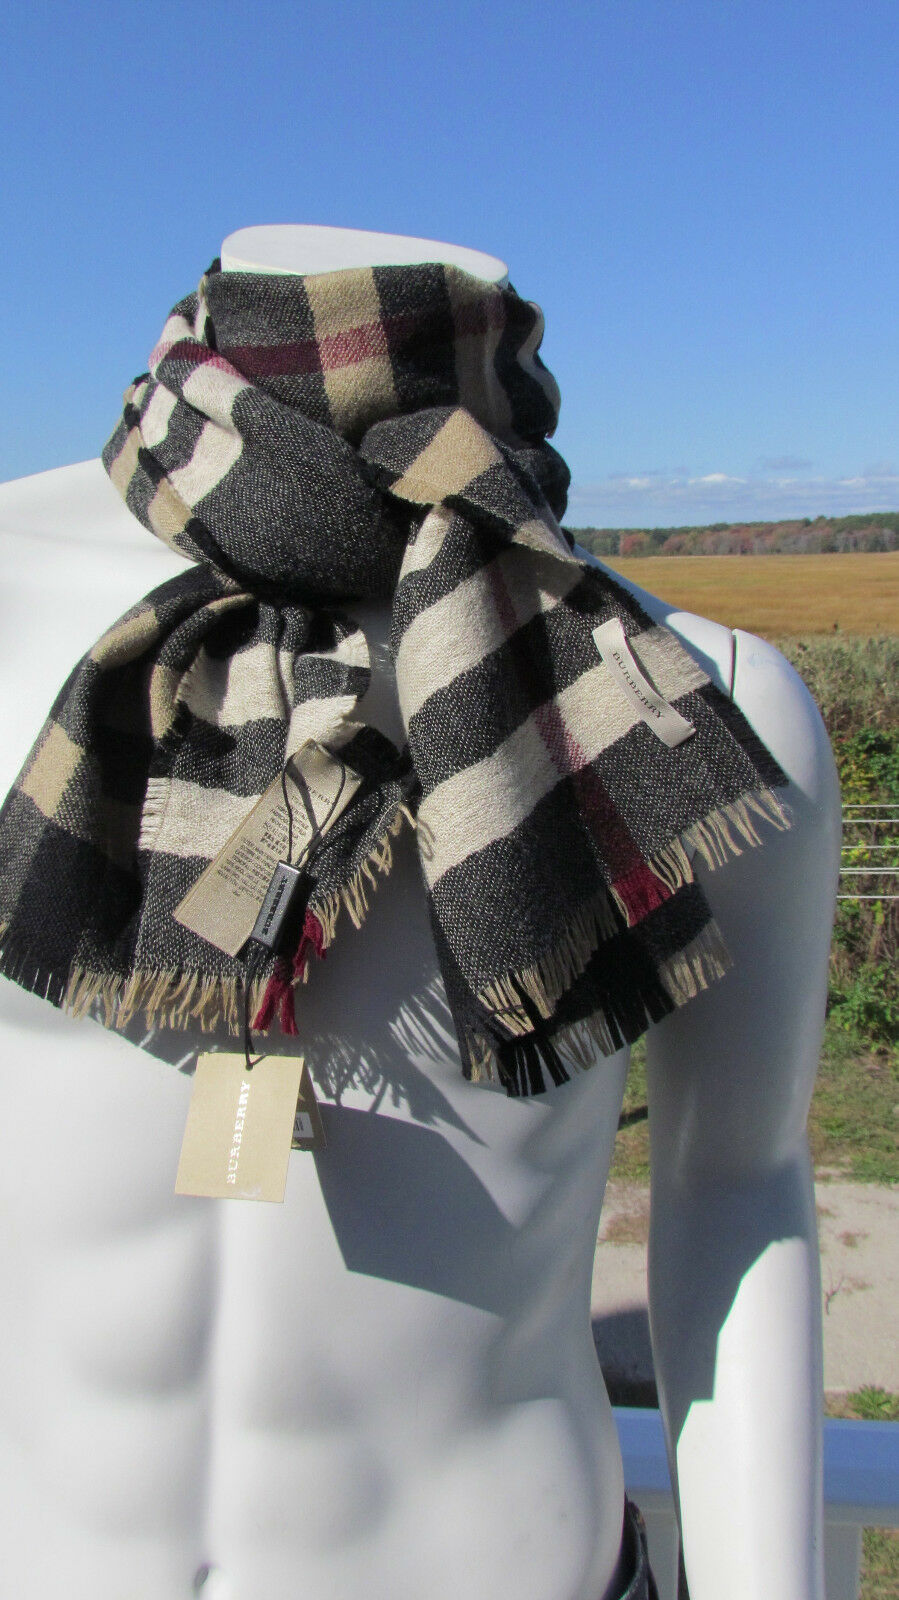 eb21c215e886 ... spain new burberry scarf 450 men italy wool reversible classic check  camel black bag 1925a 4c64f